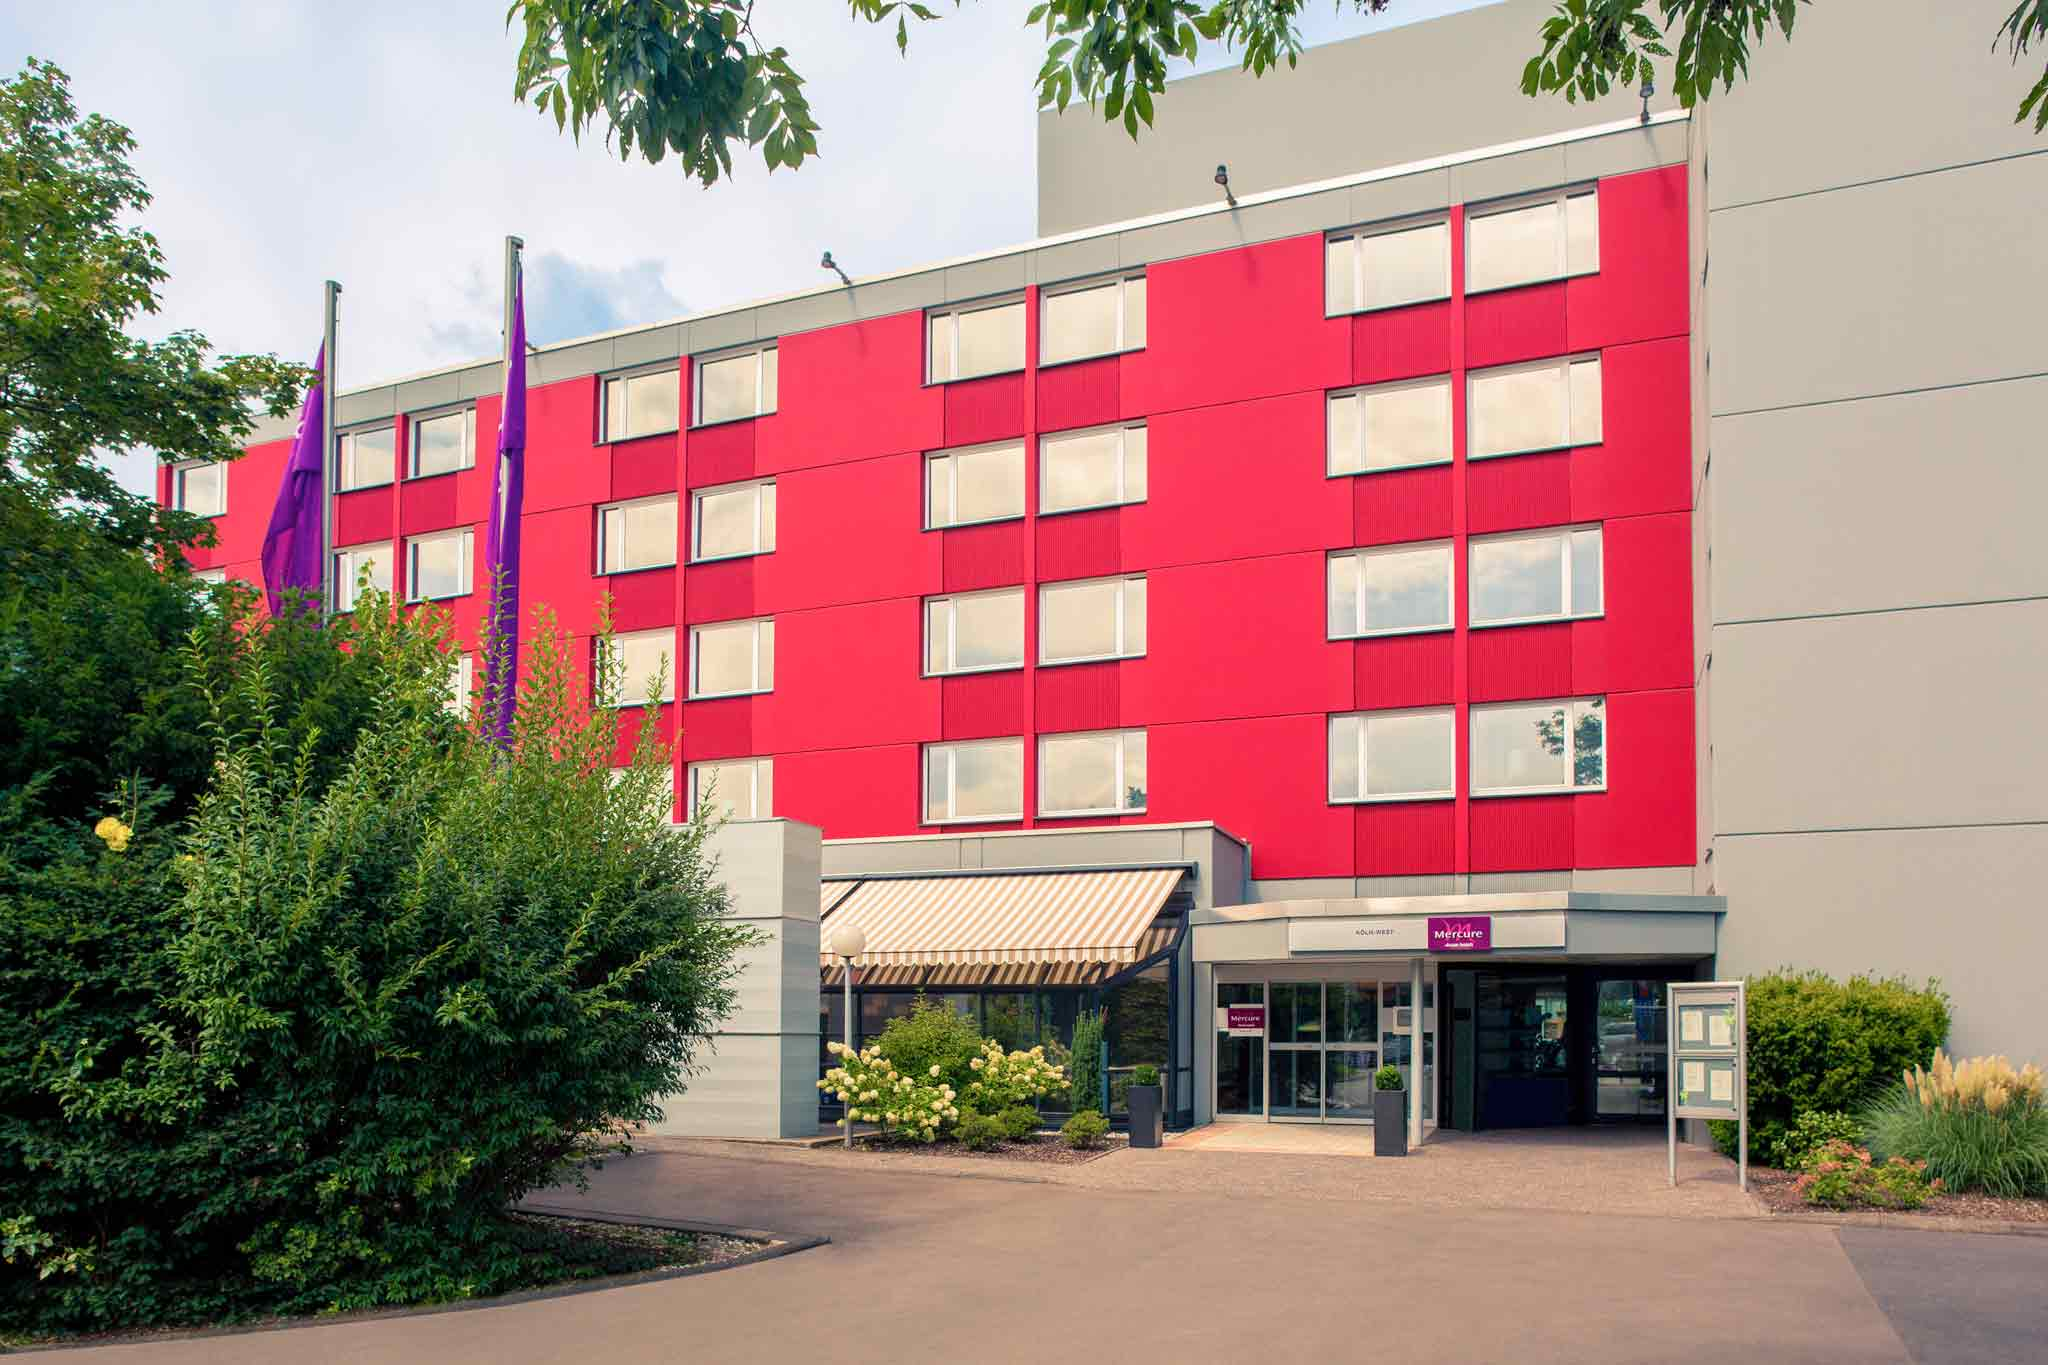 Mercure Hotel Cologne West. Book now! Free Wifi! Sauna!